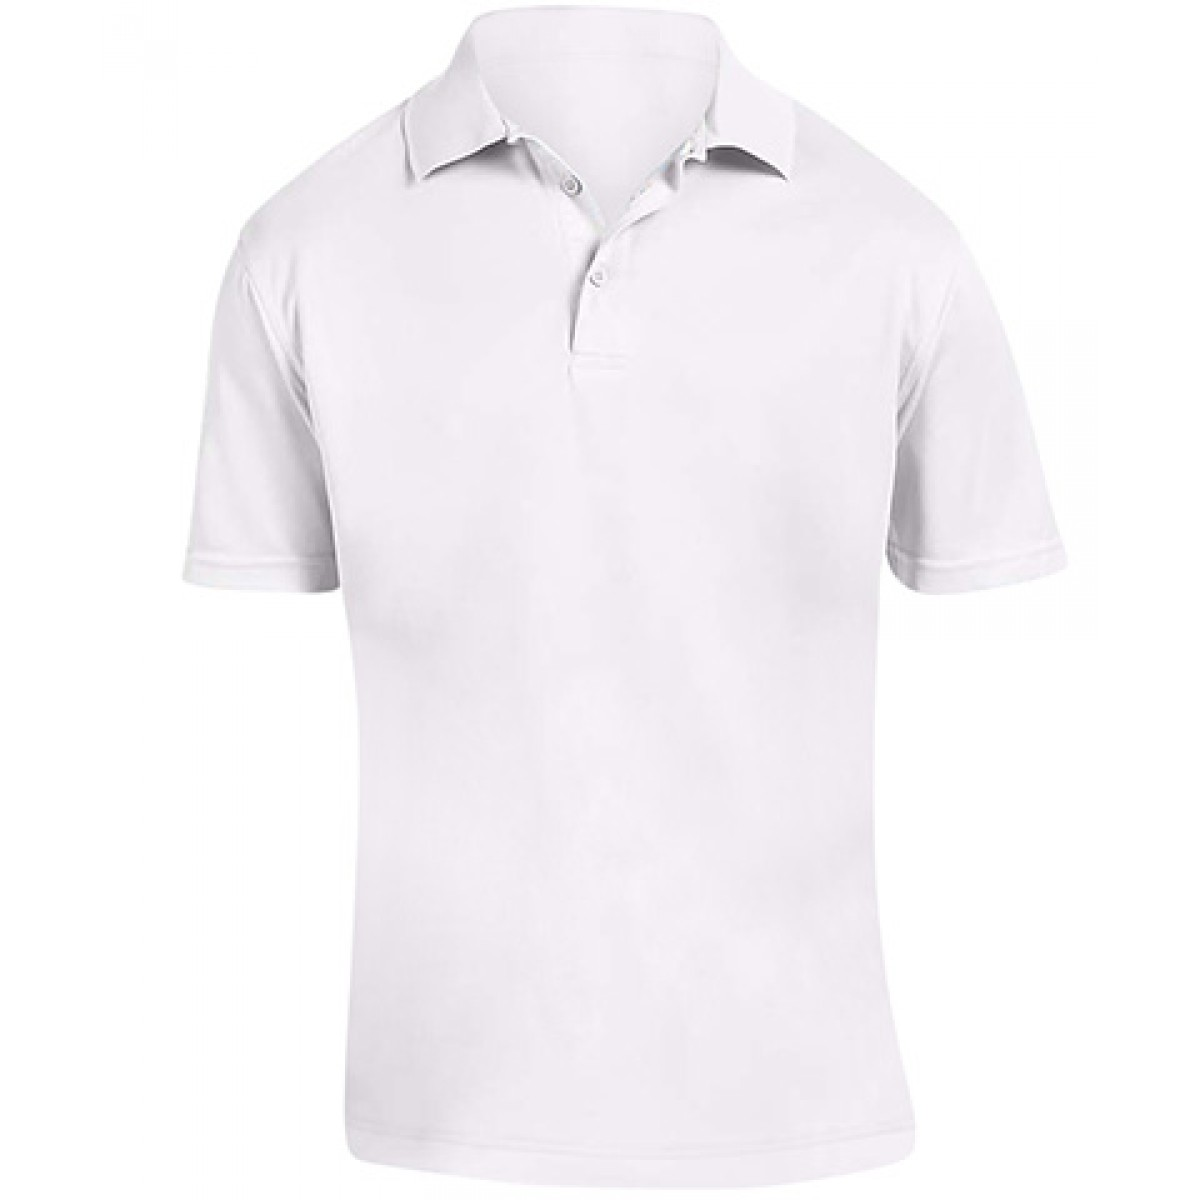 White Polytech Polo 4 oz. -White-S